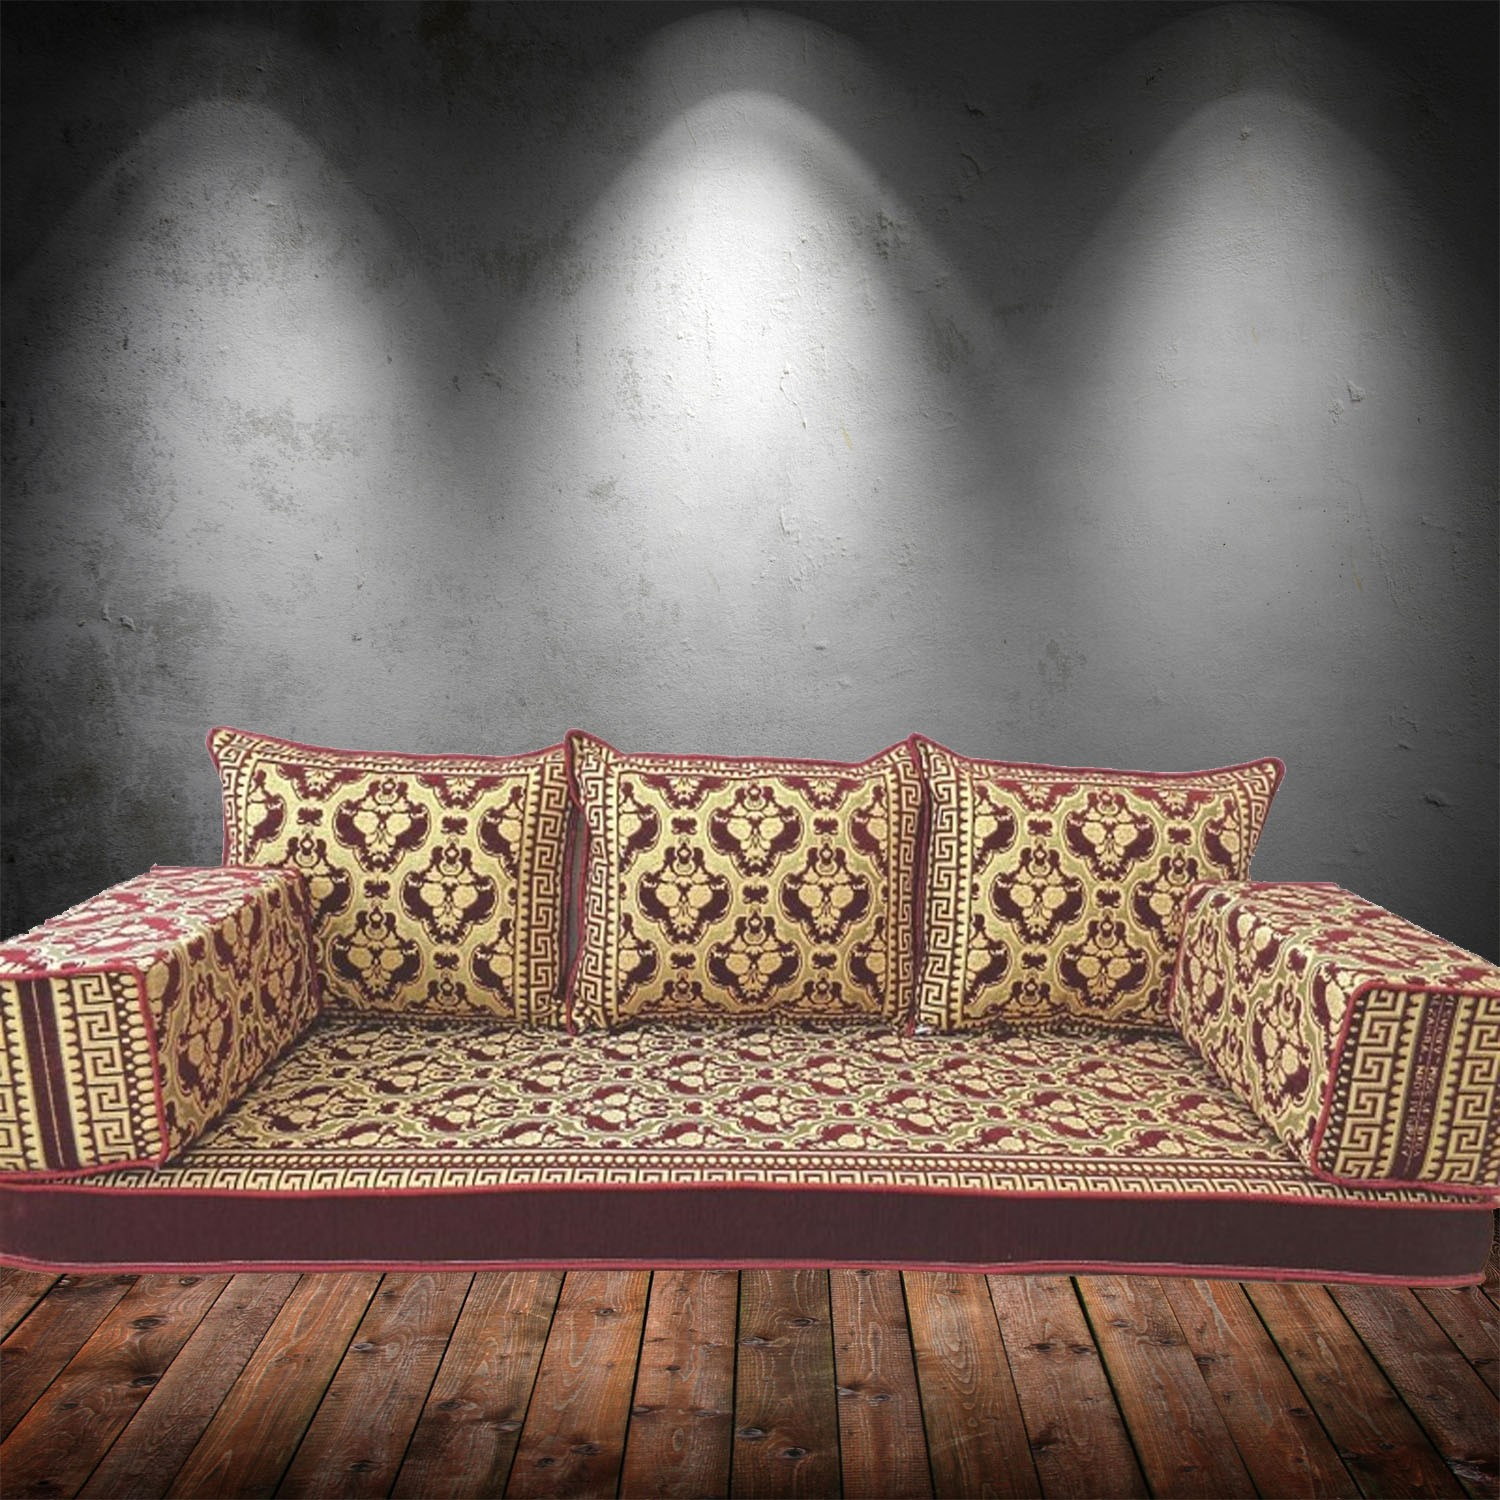 Floor sofa with triple back pillows - SHI_FS392